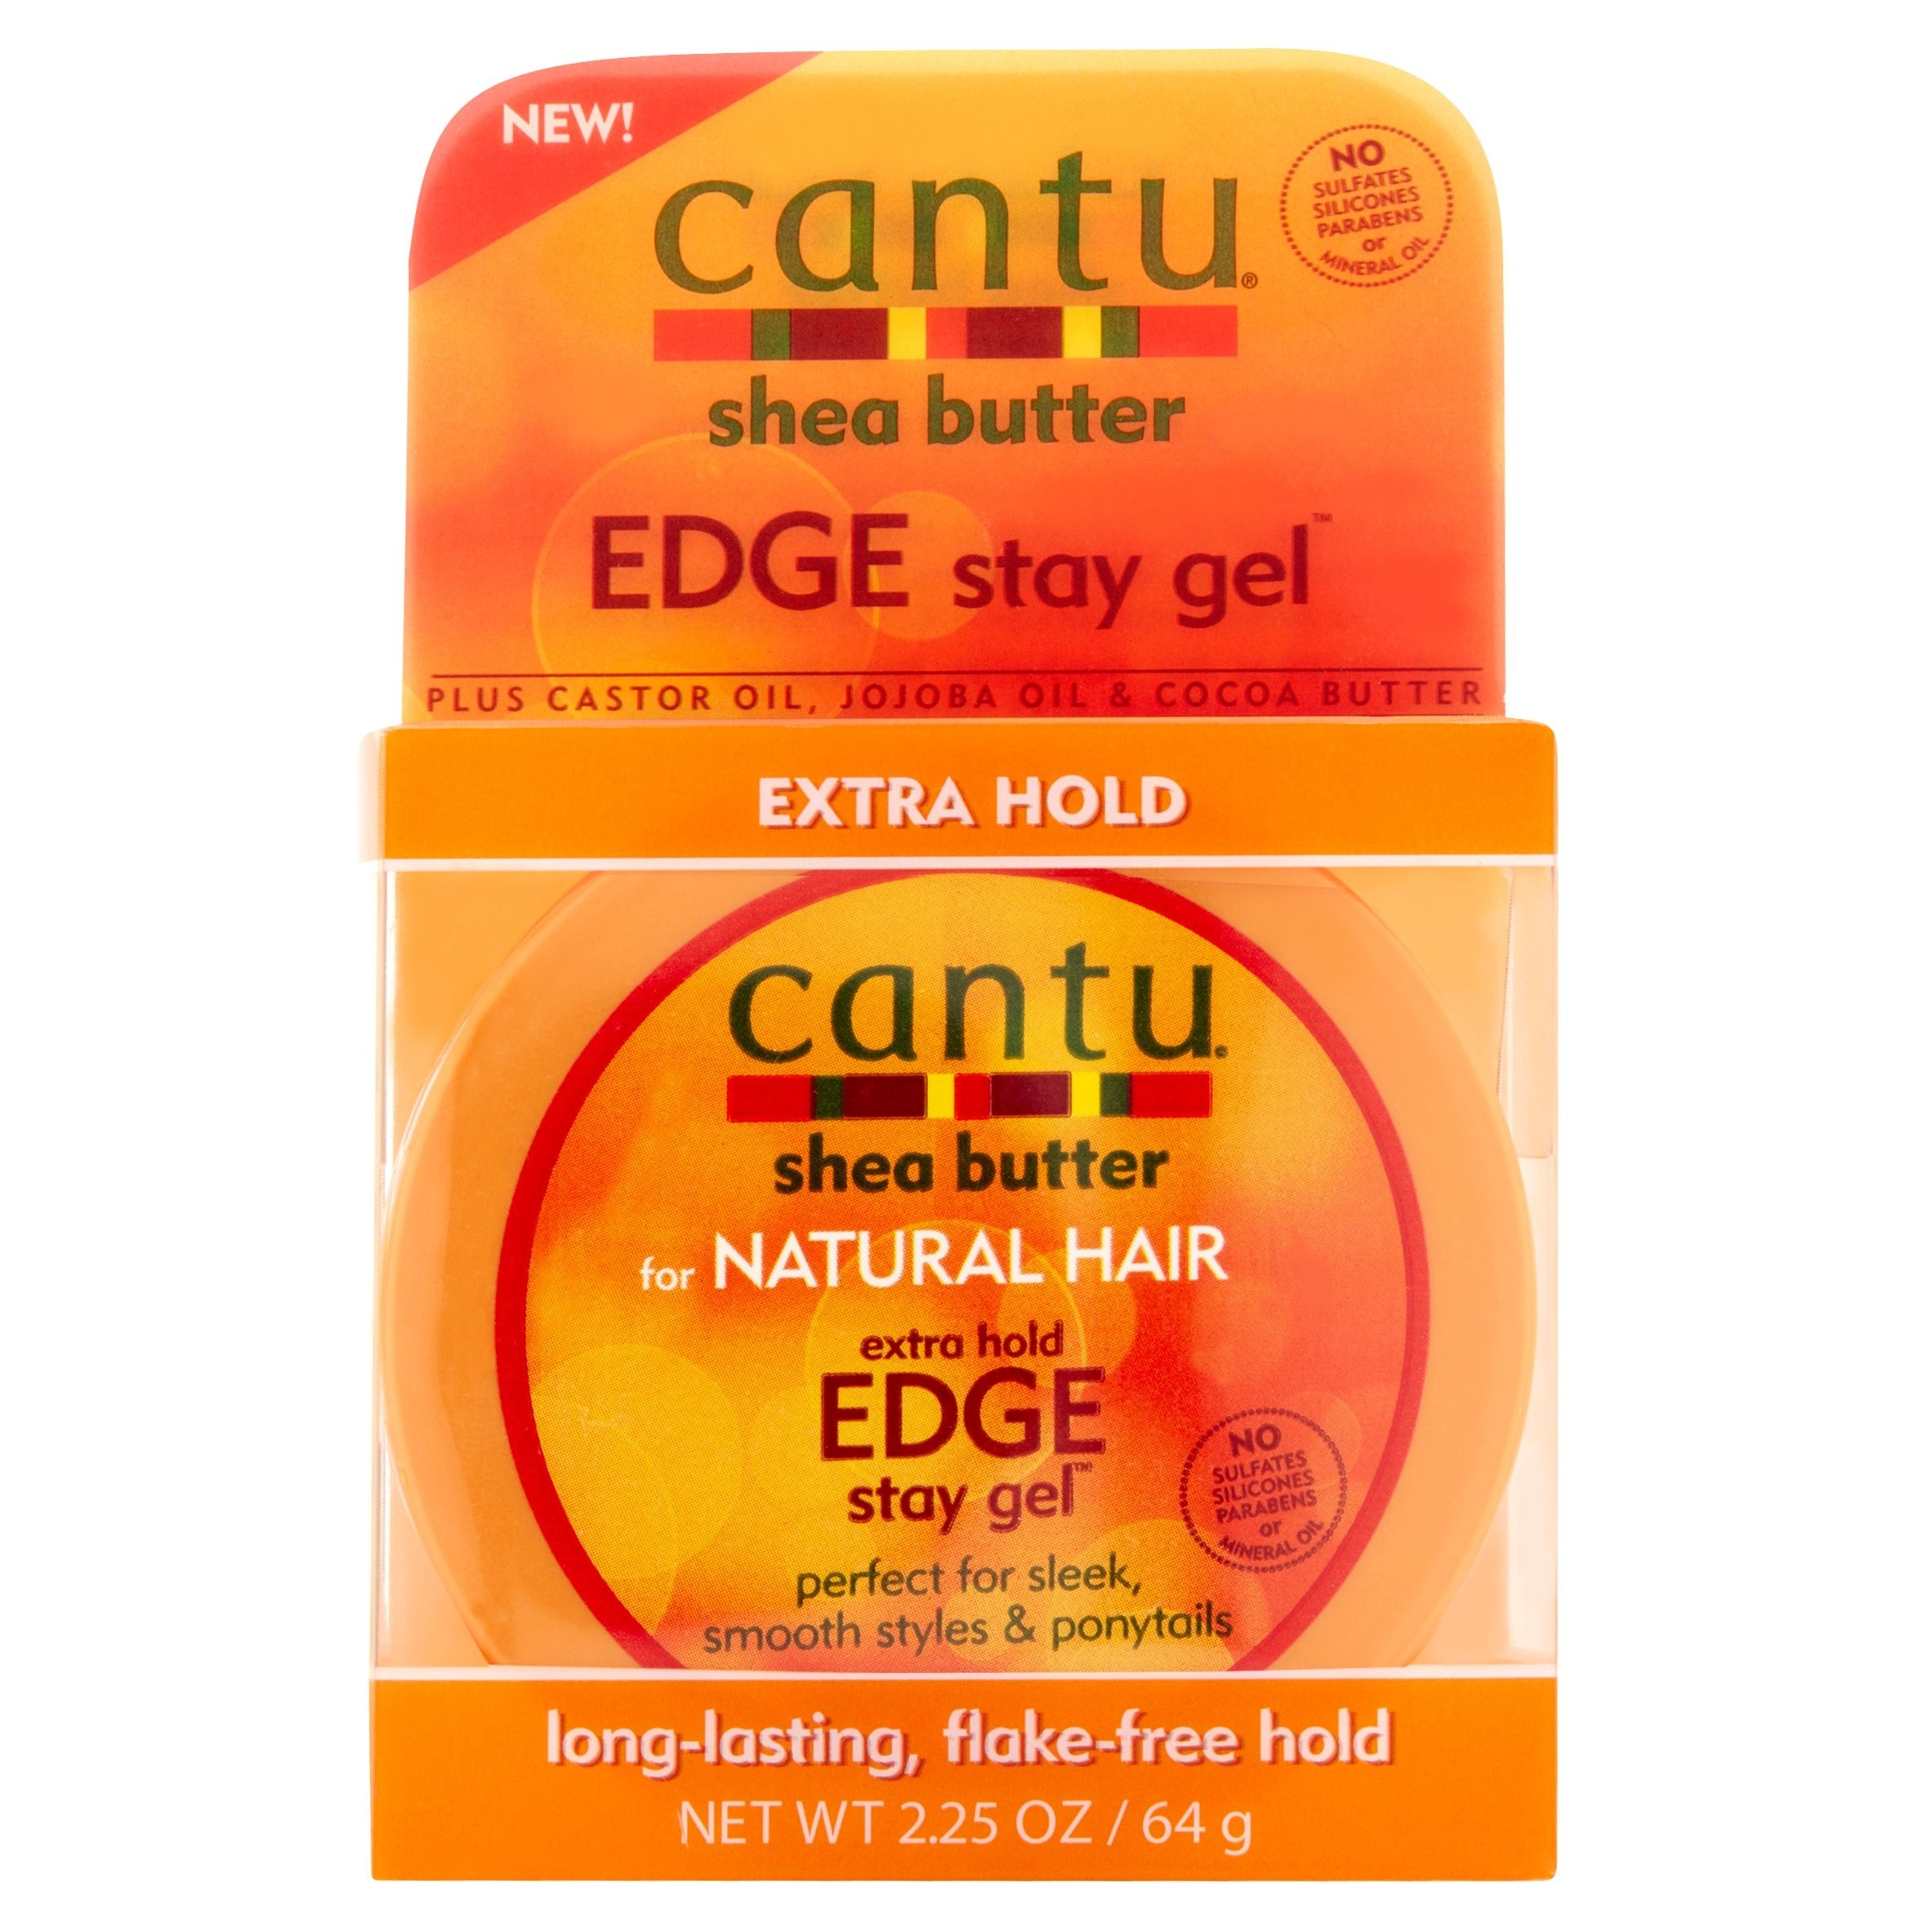 CANTU Shea Butter FOR NATURAL HAIR Edge Stay Gel